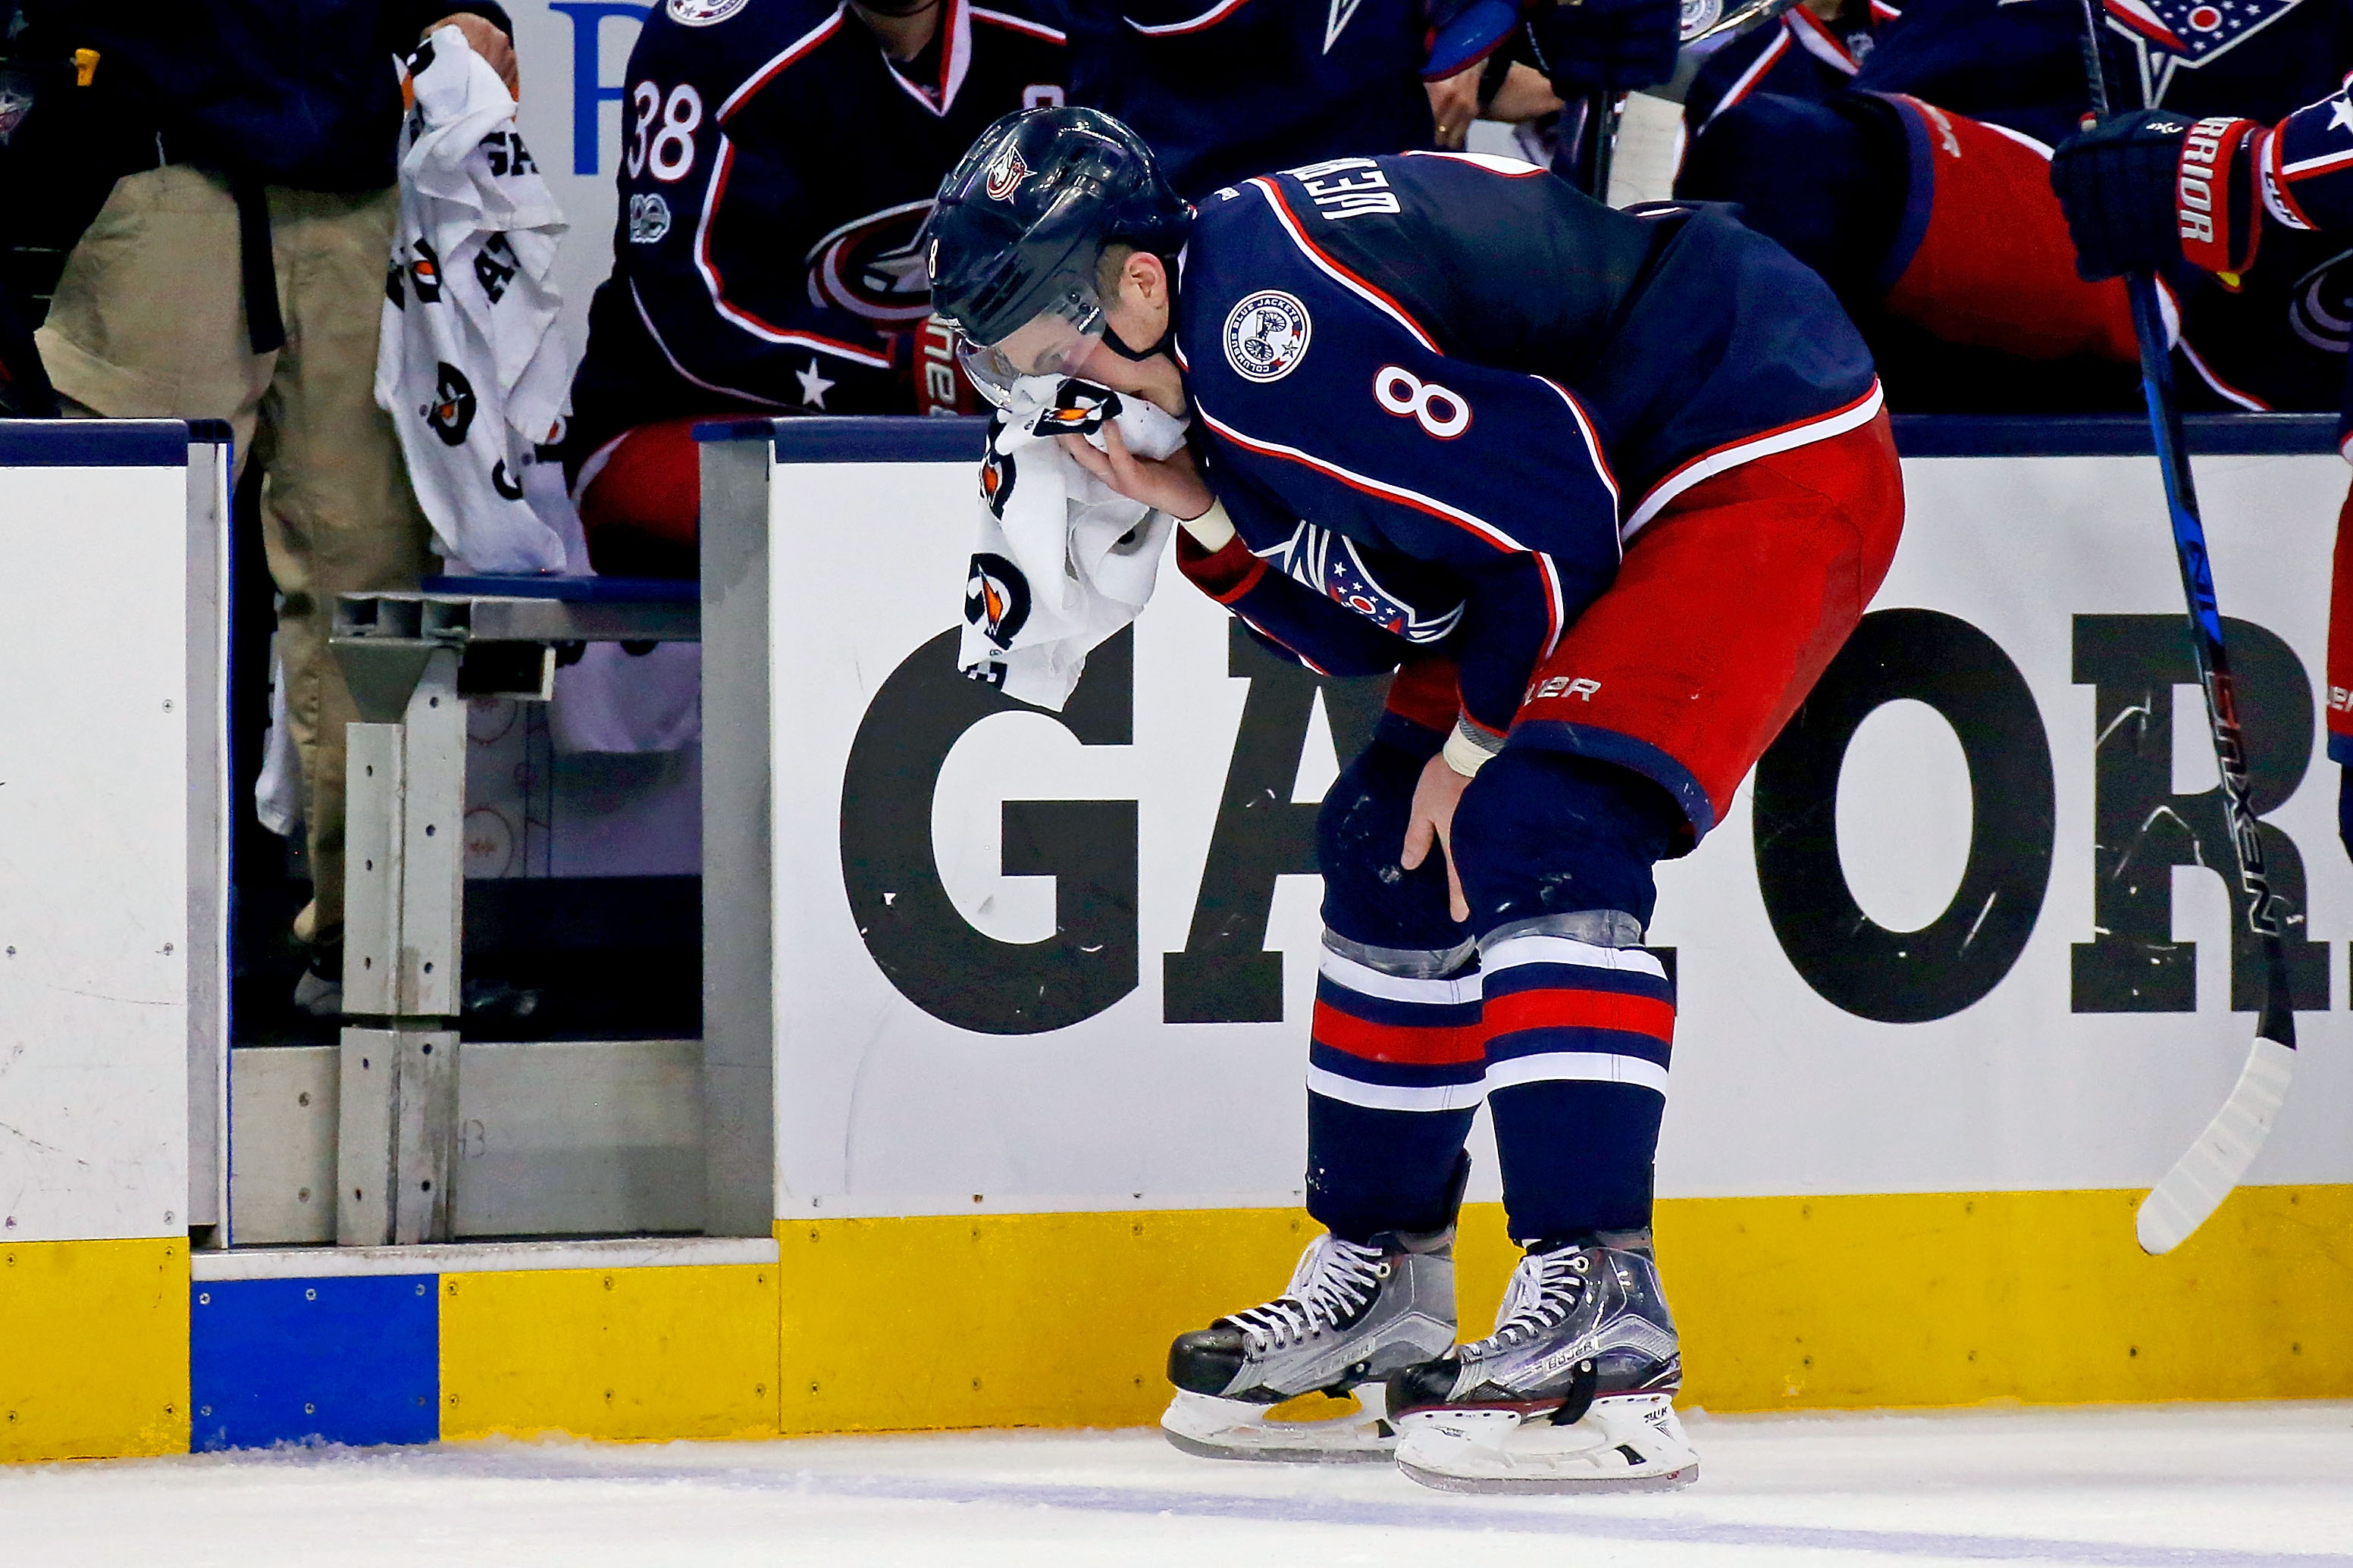 Blue Jackets' season stays alive with wild 5-4 win over Penguins